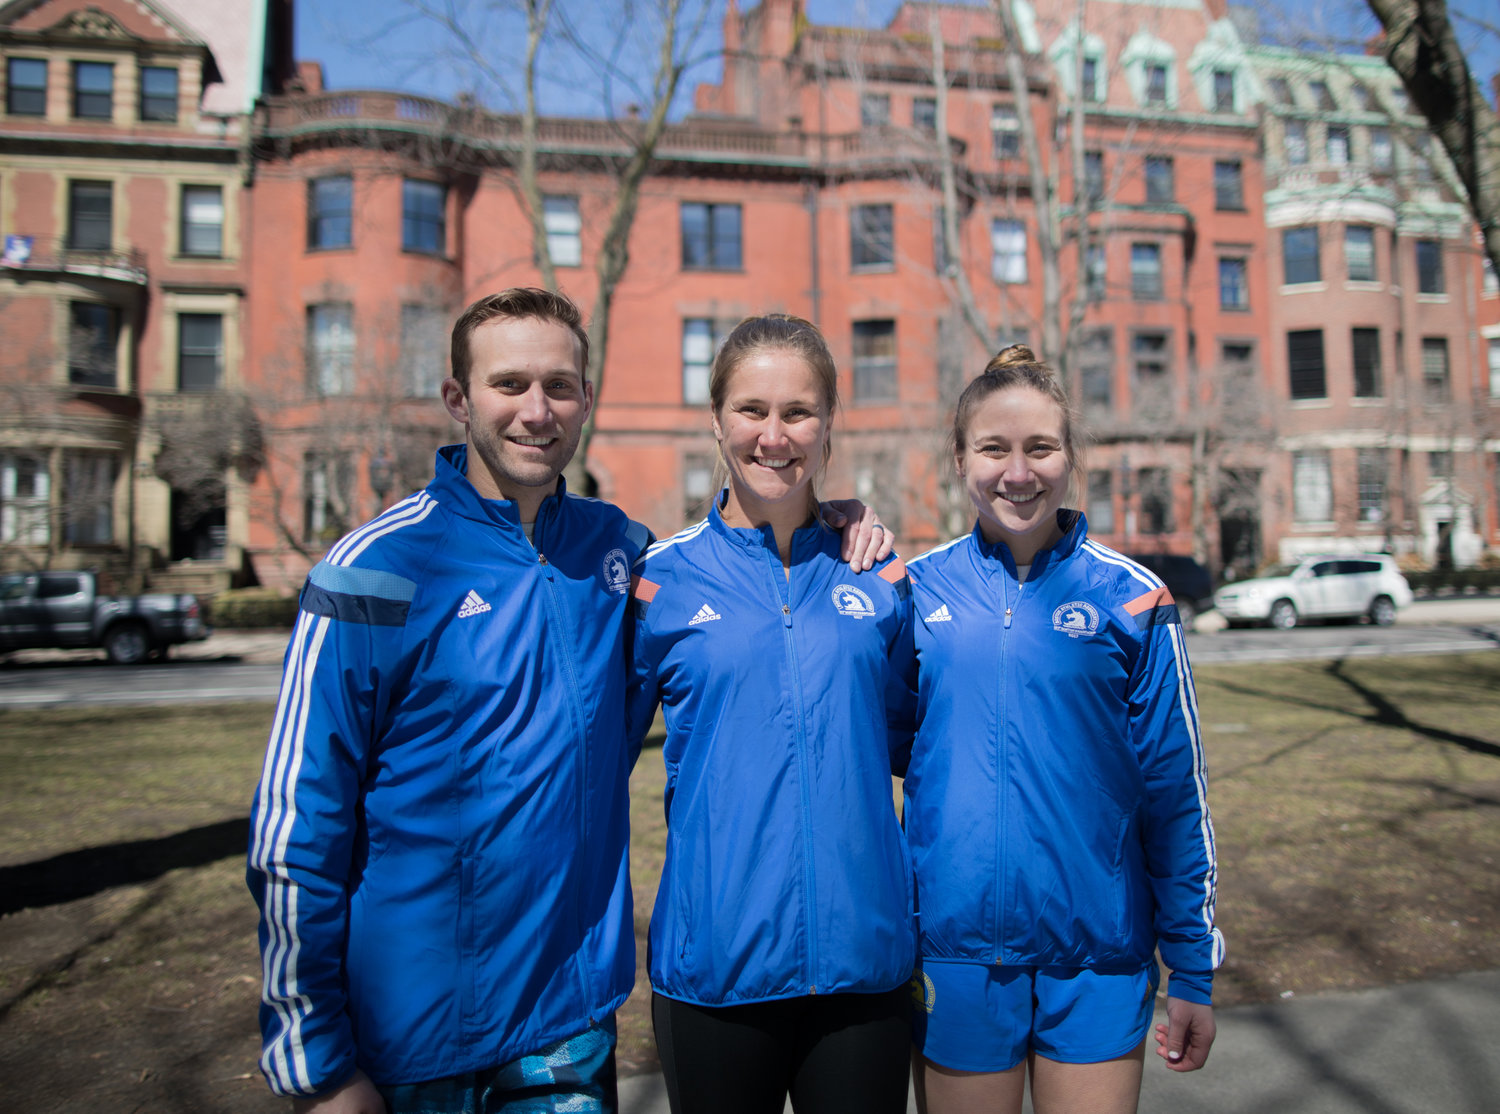 From left, Peter, Kate and Charlotte are set to run in the Boston Marathon on Monday, their first 26.2-mile race. The Cipolletti Family